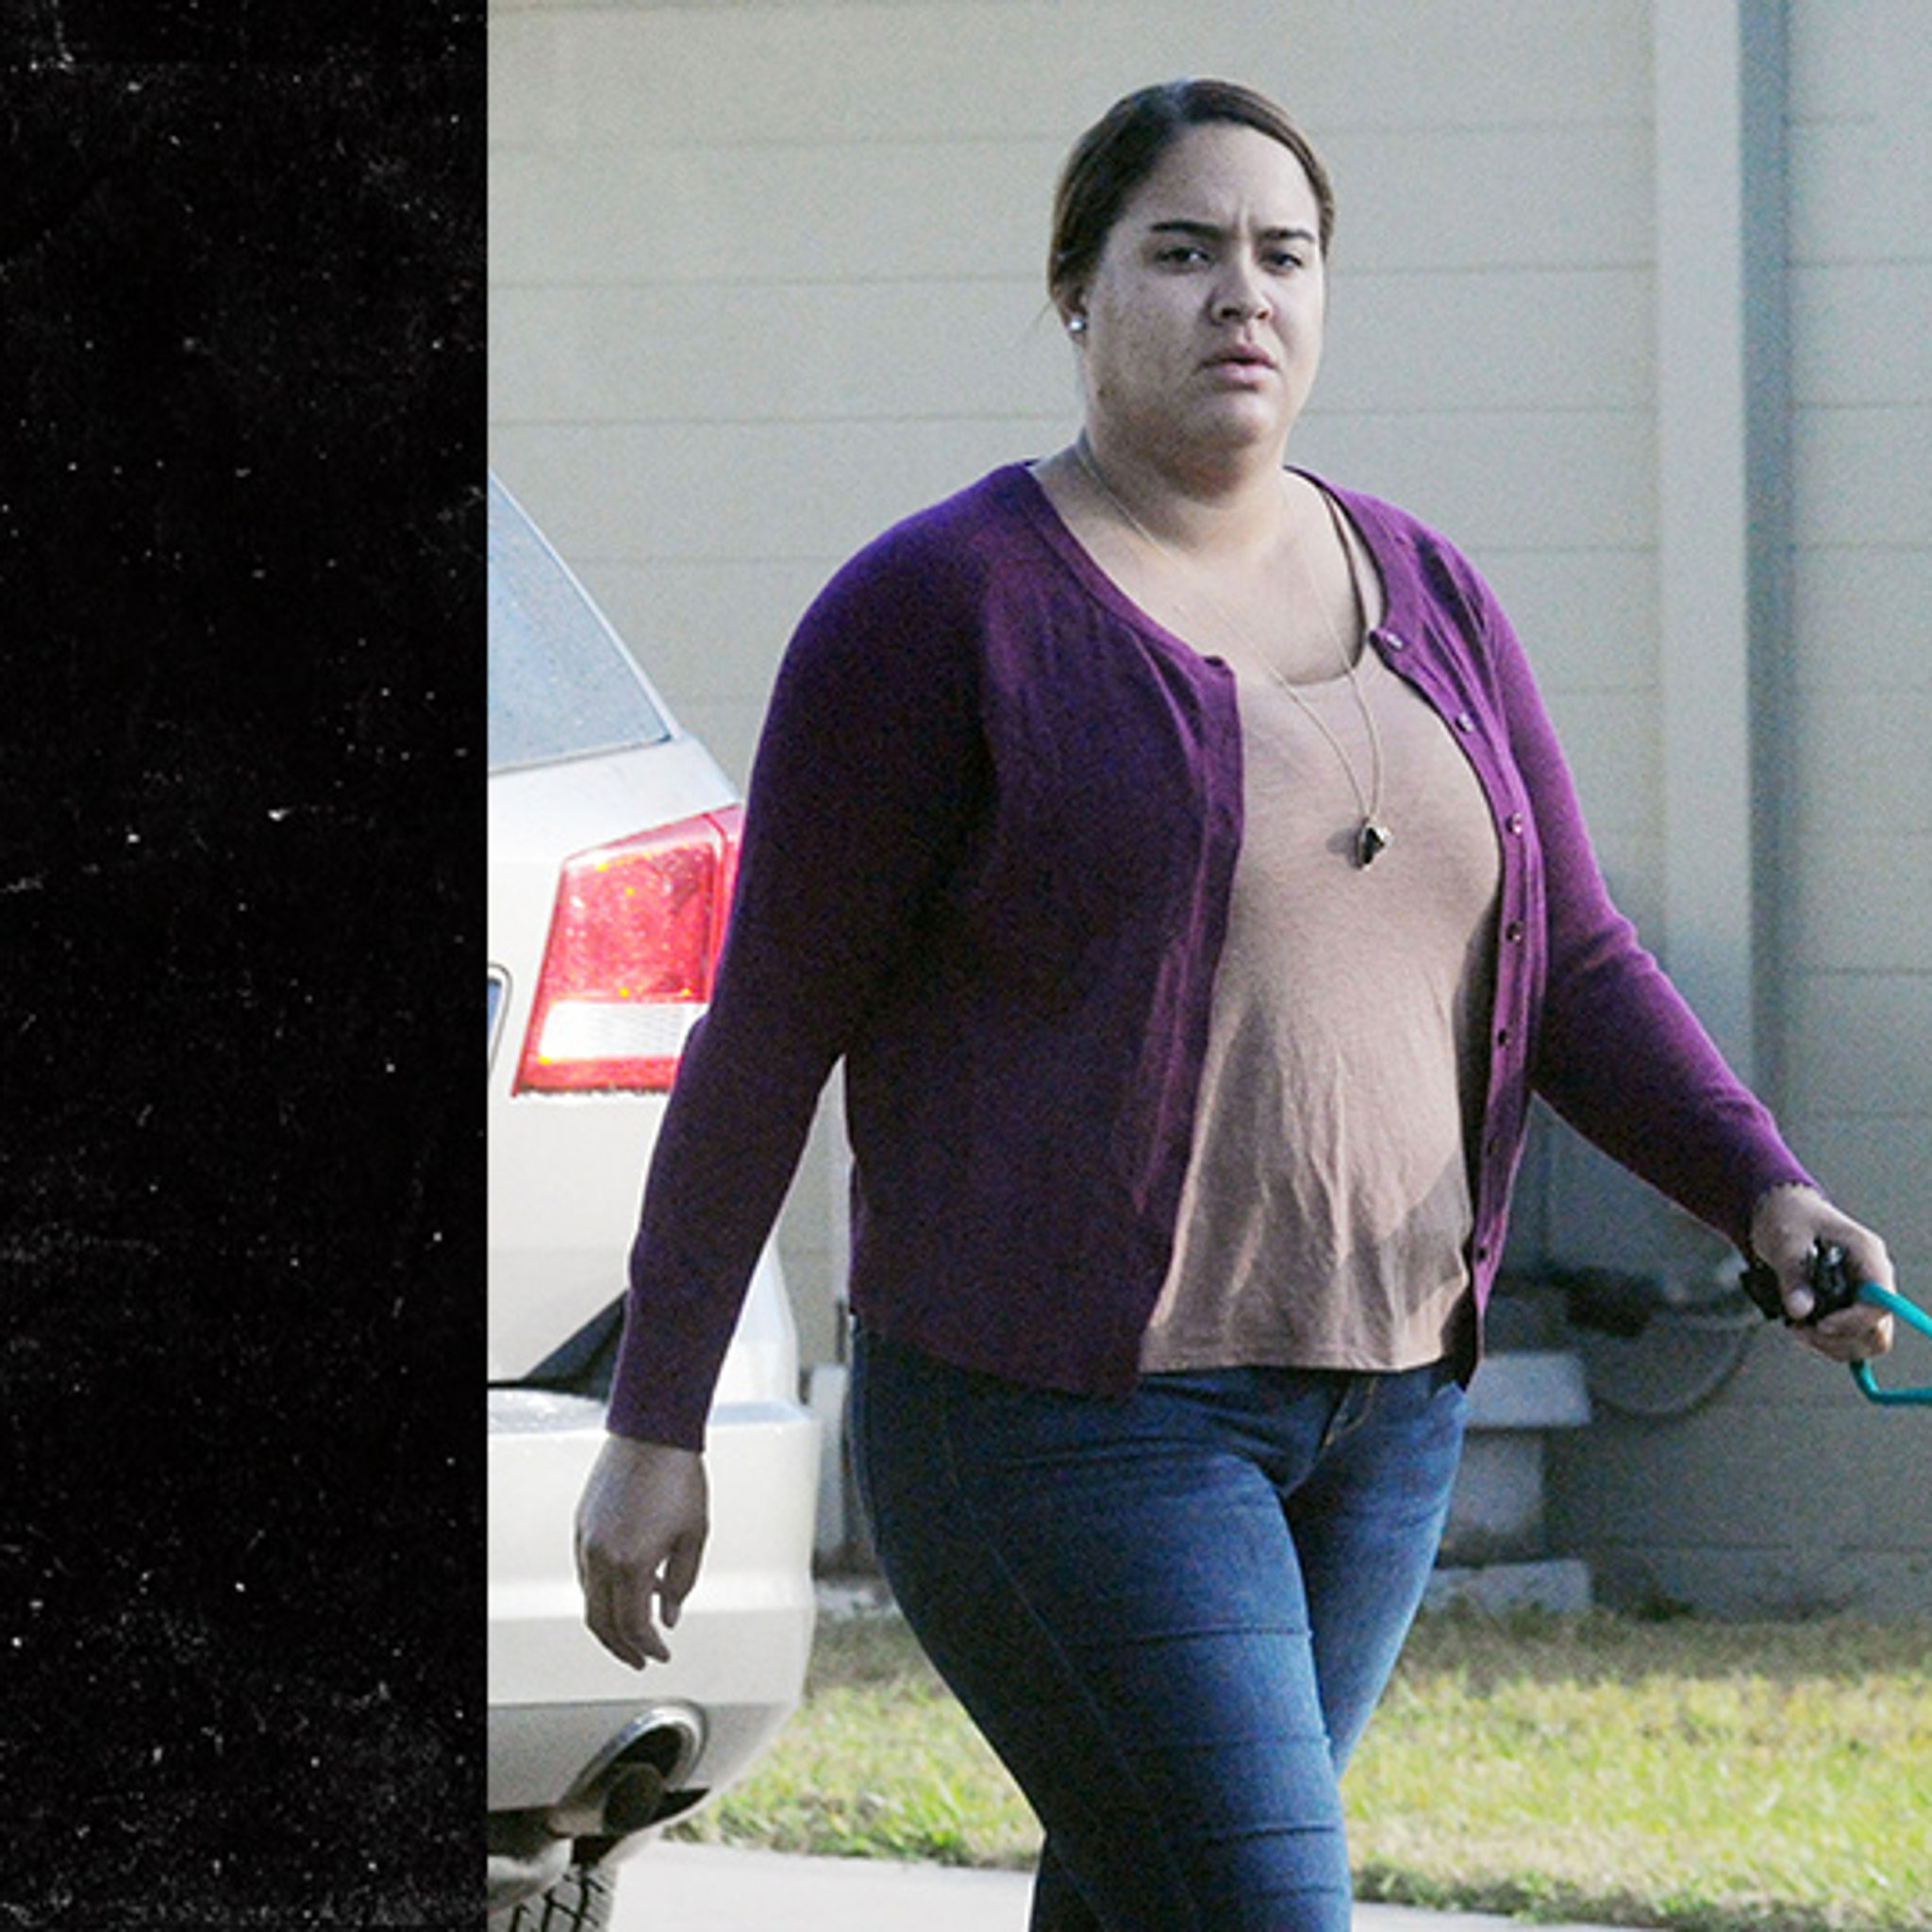 O.J. Simpson's Daughter Sydney ... 22 Years After Mother's Murder